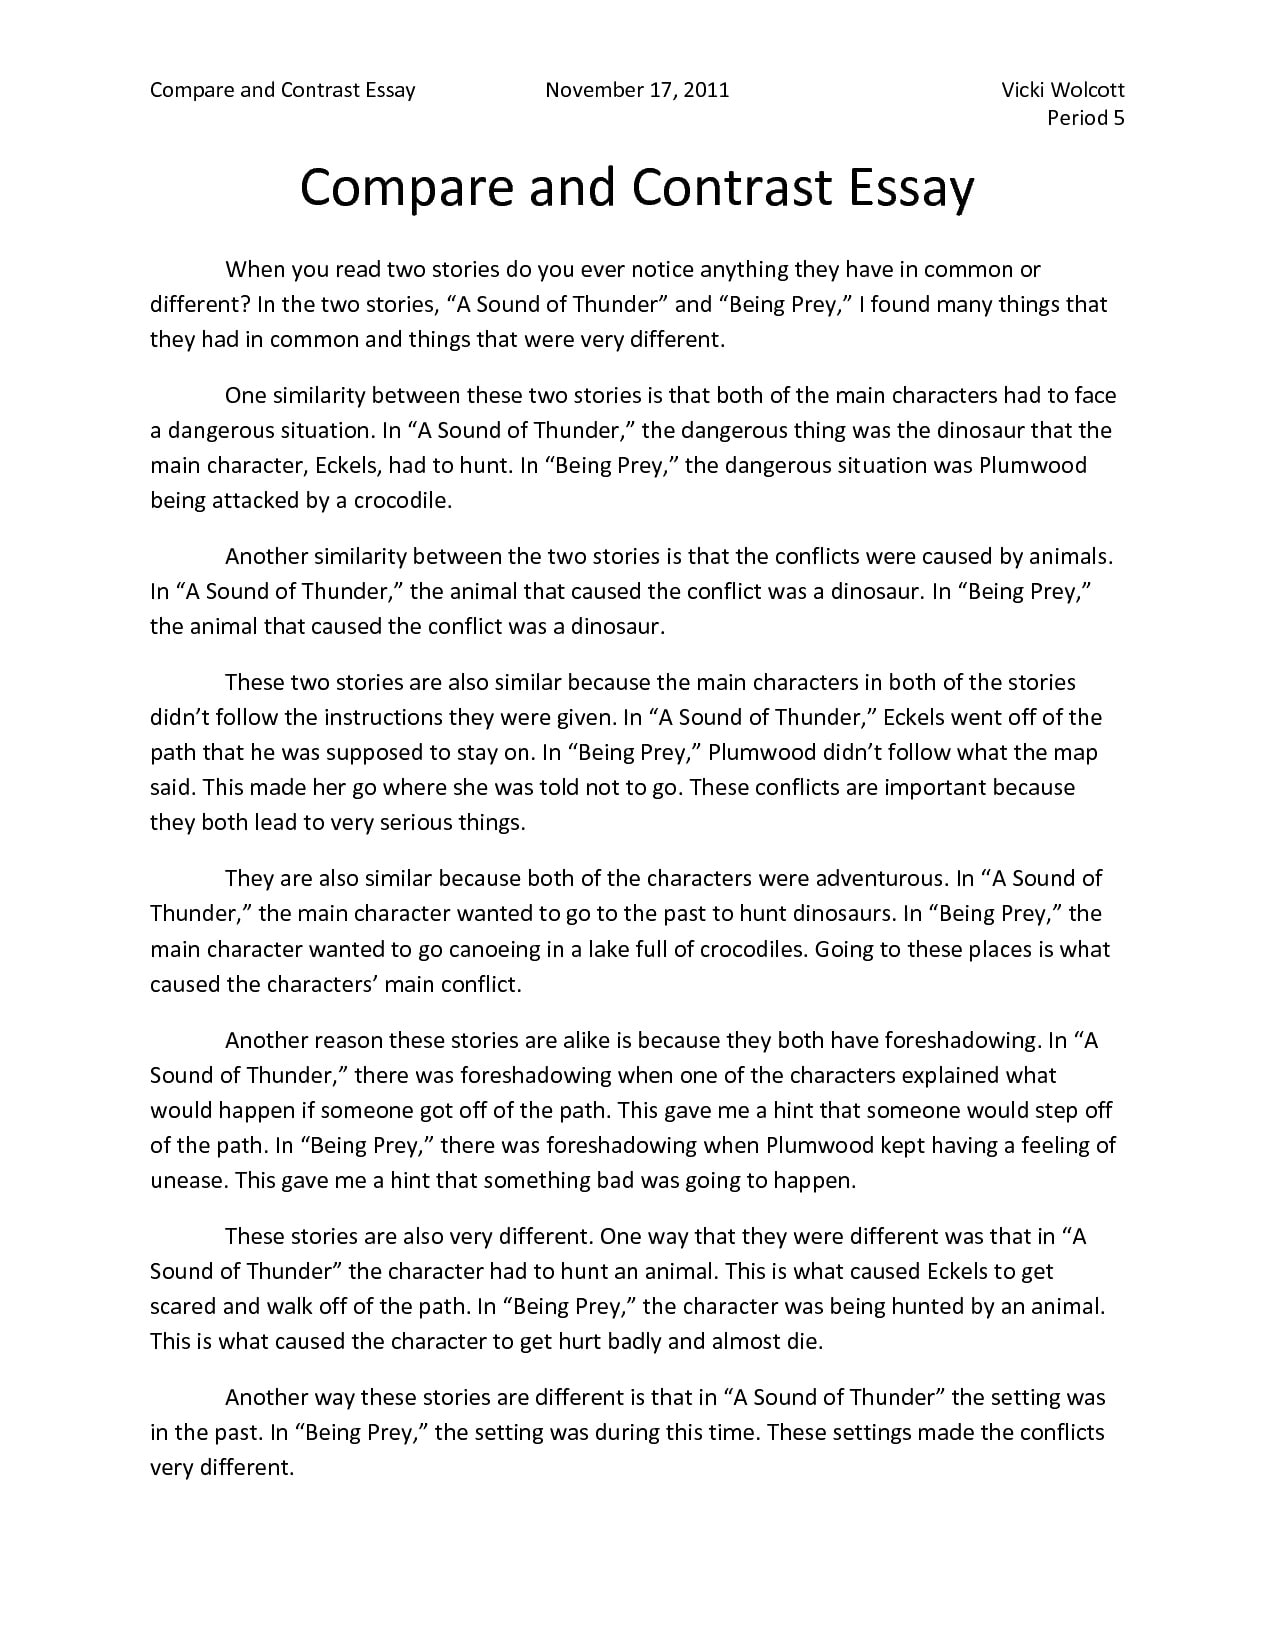 Compare and Contrast Essay - Obfuscata